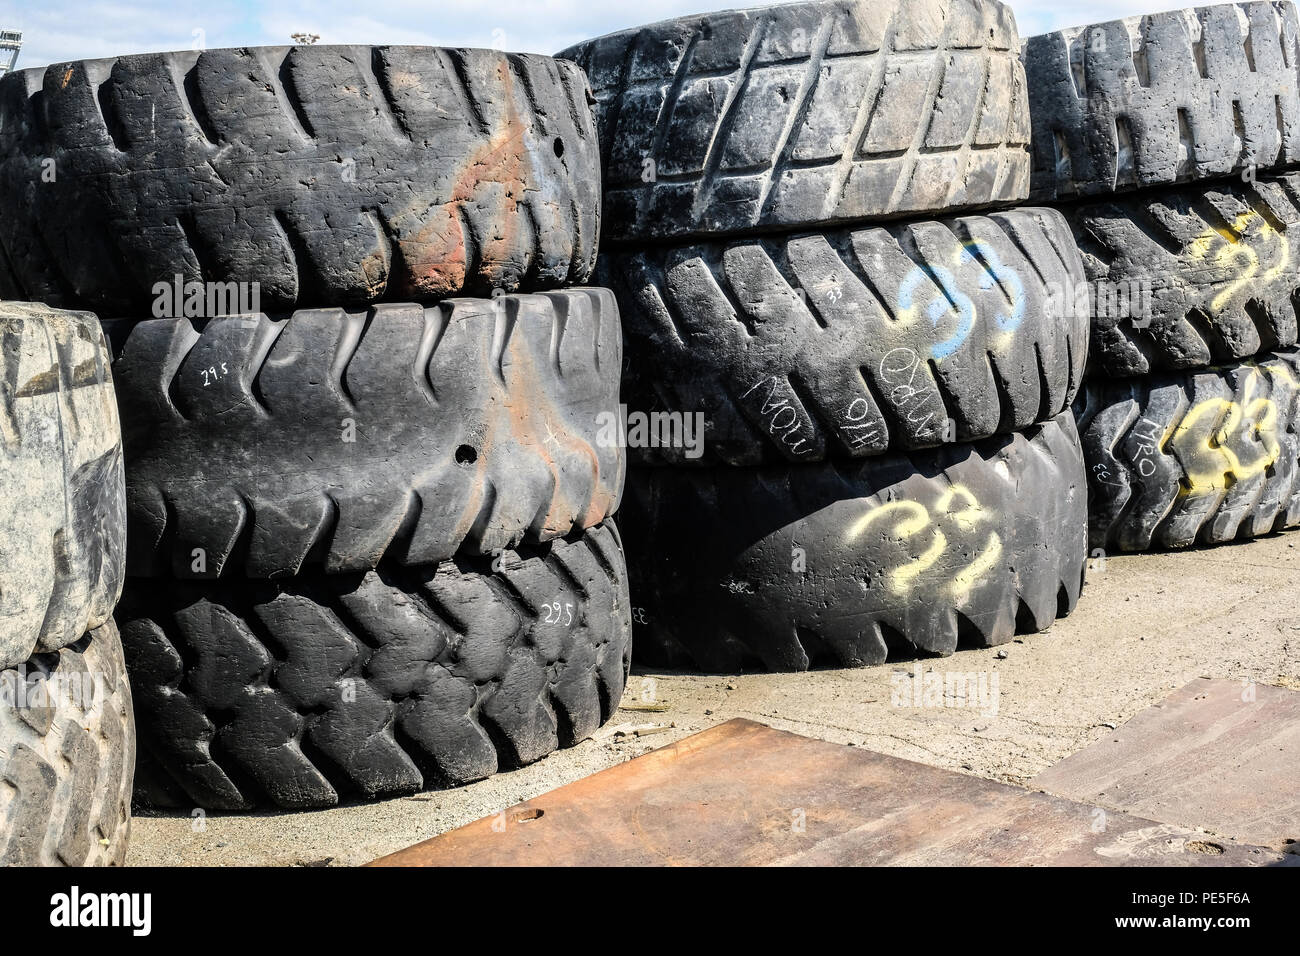 Giant wore out rubber tires - Stock Image